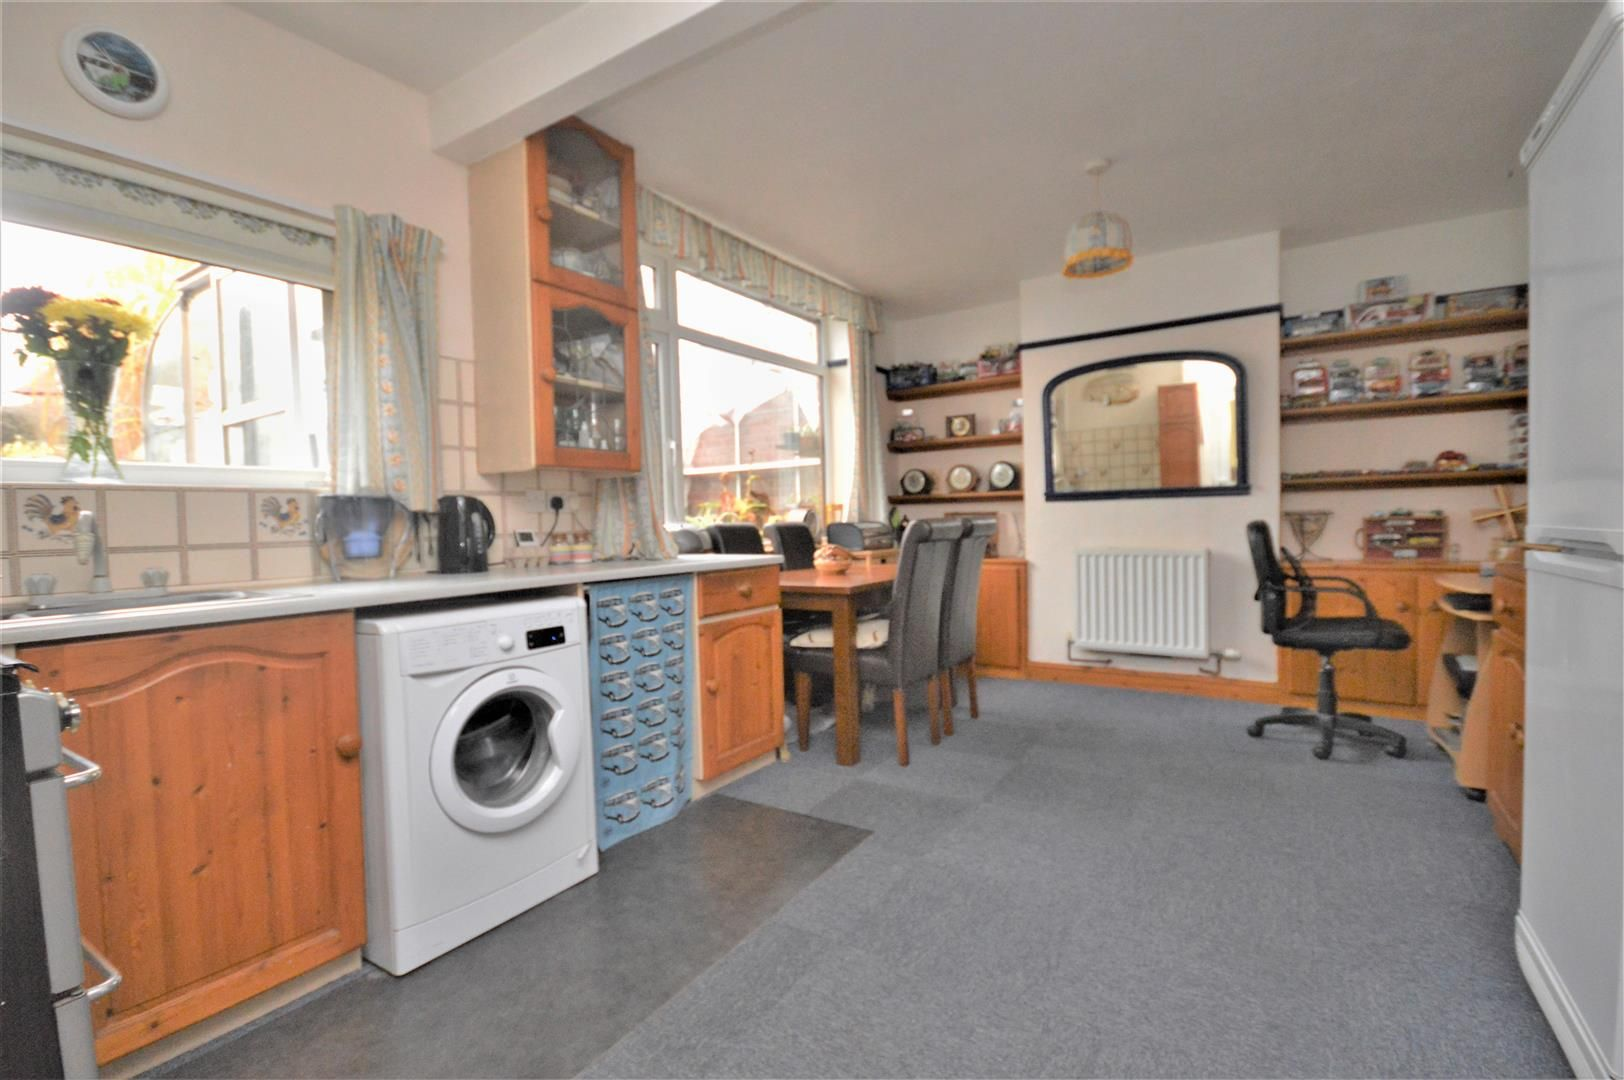 3 bed semi-detached for sale in Hereford  - Property Image 7